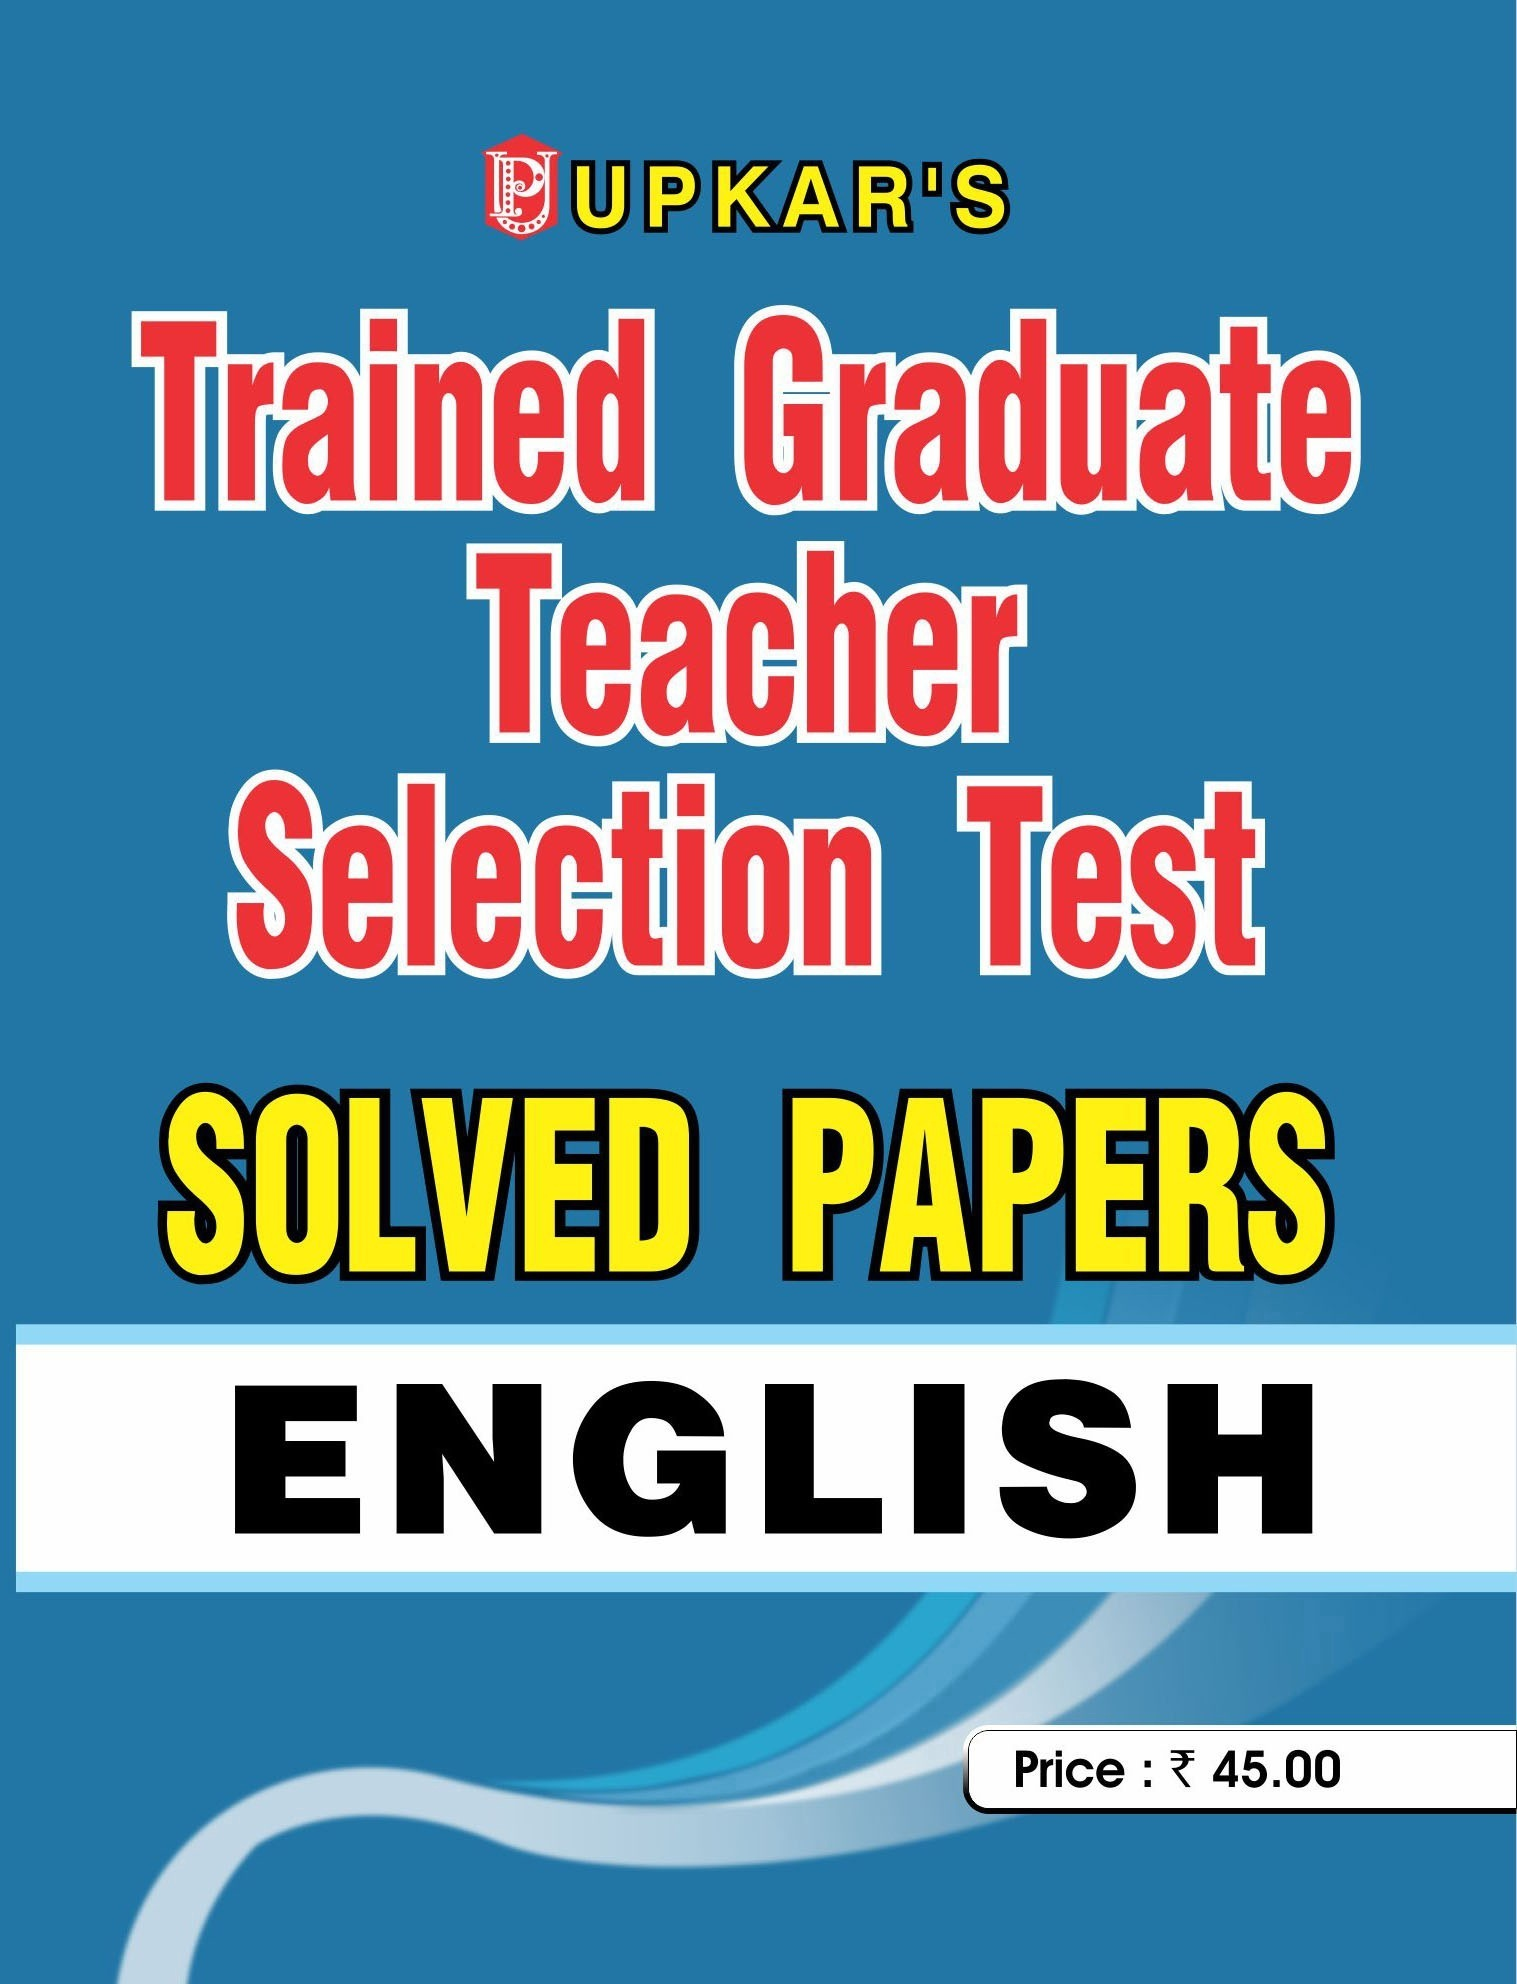 TGT Selection Test English Solved Papers